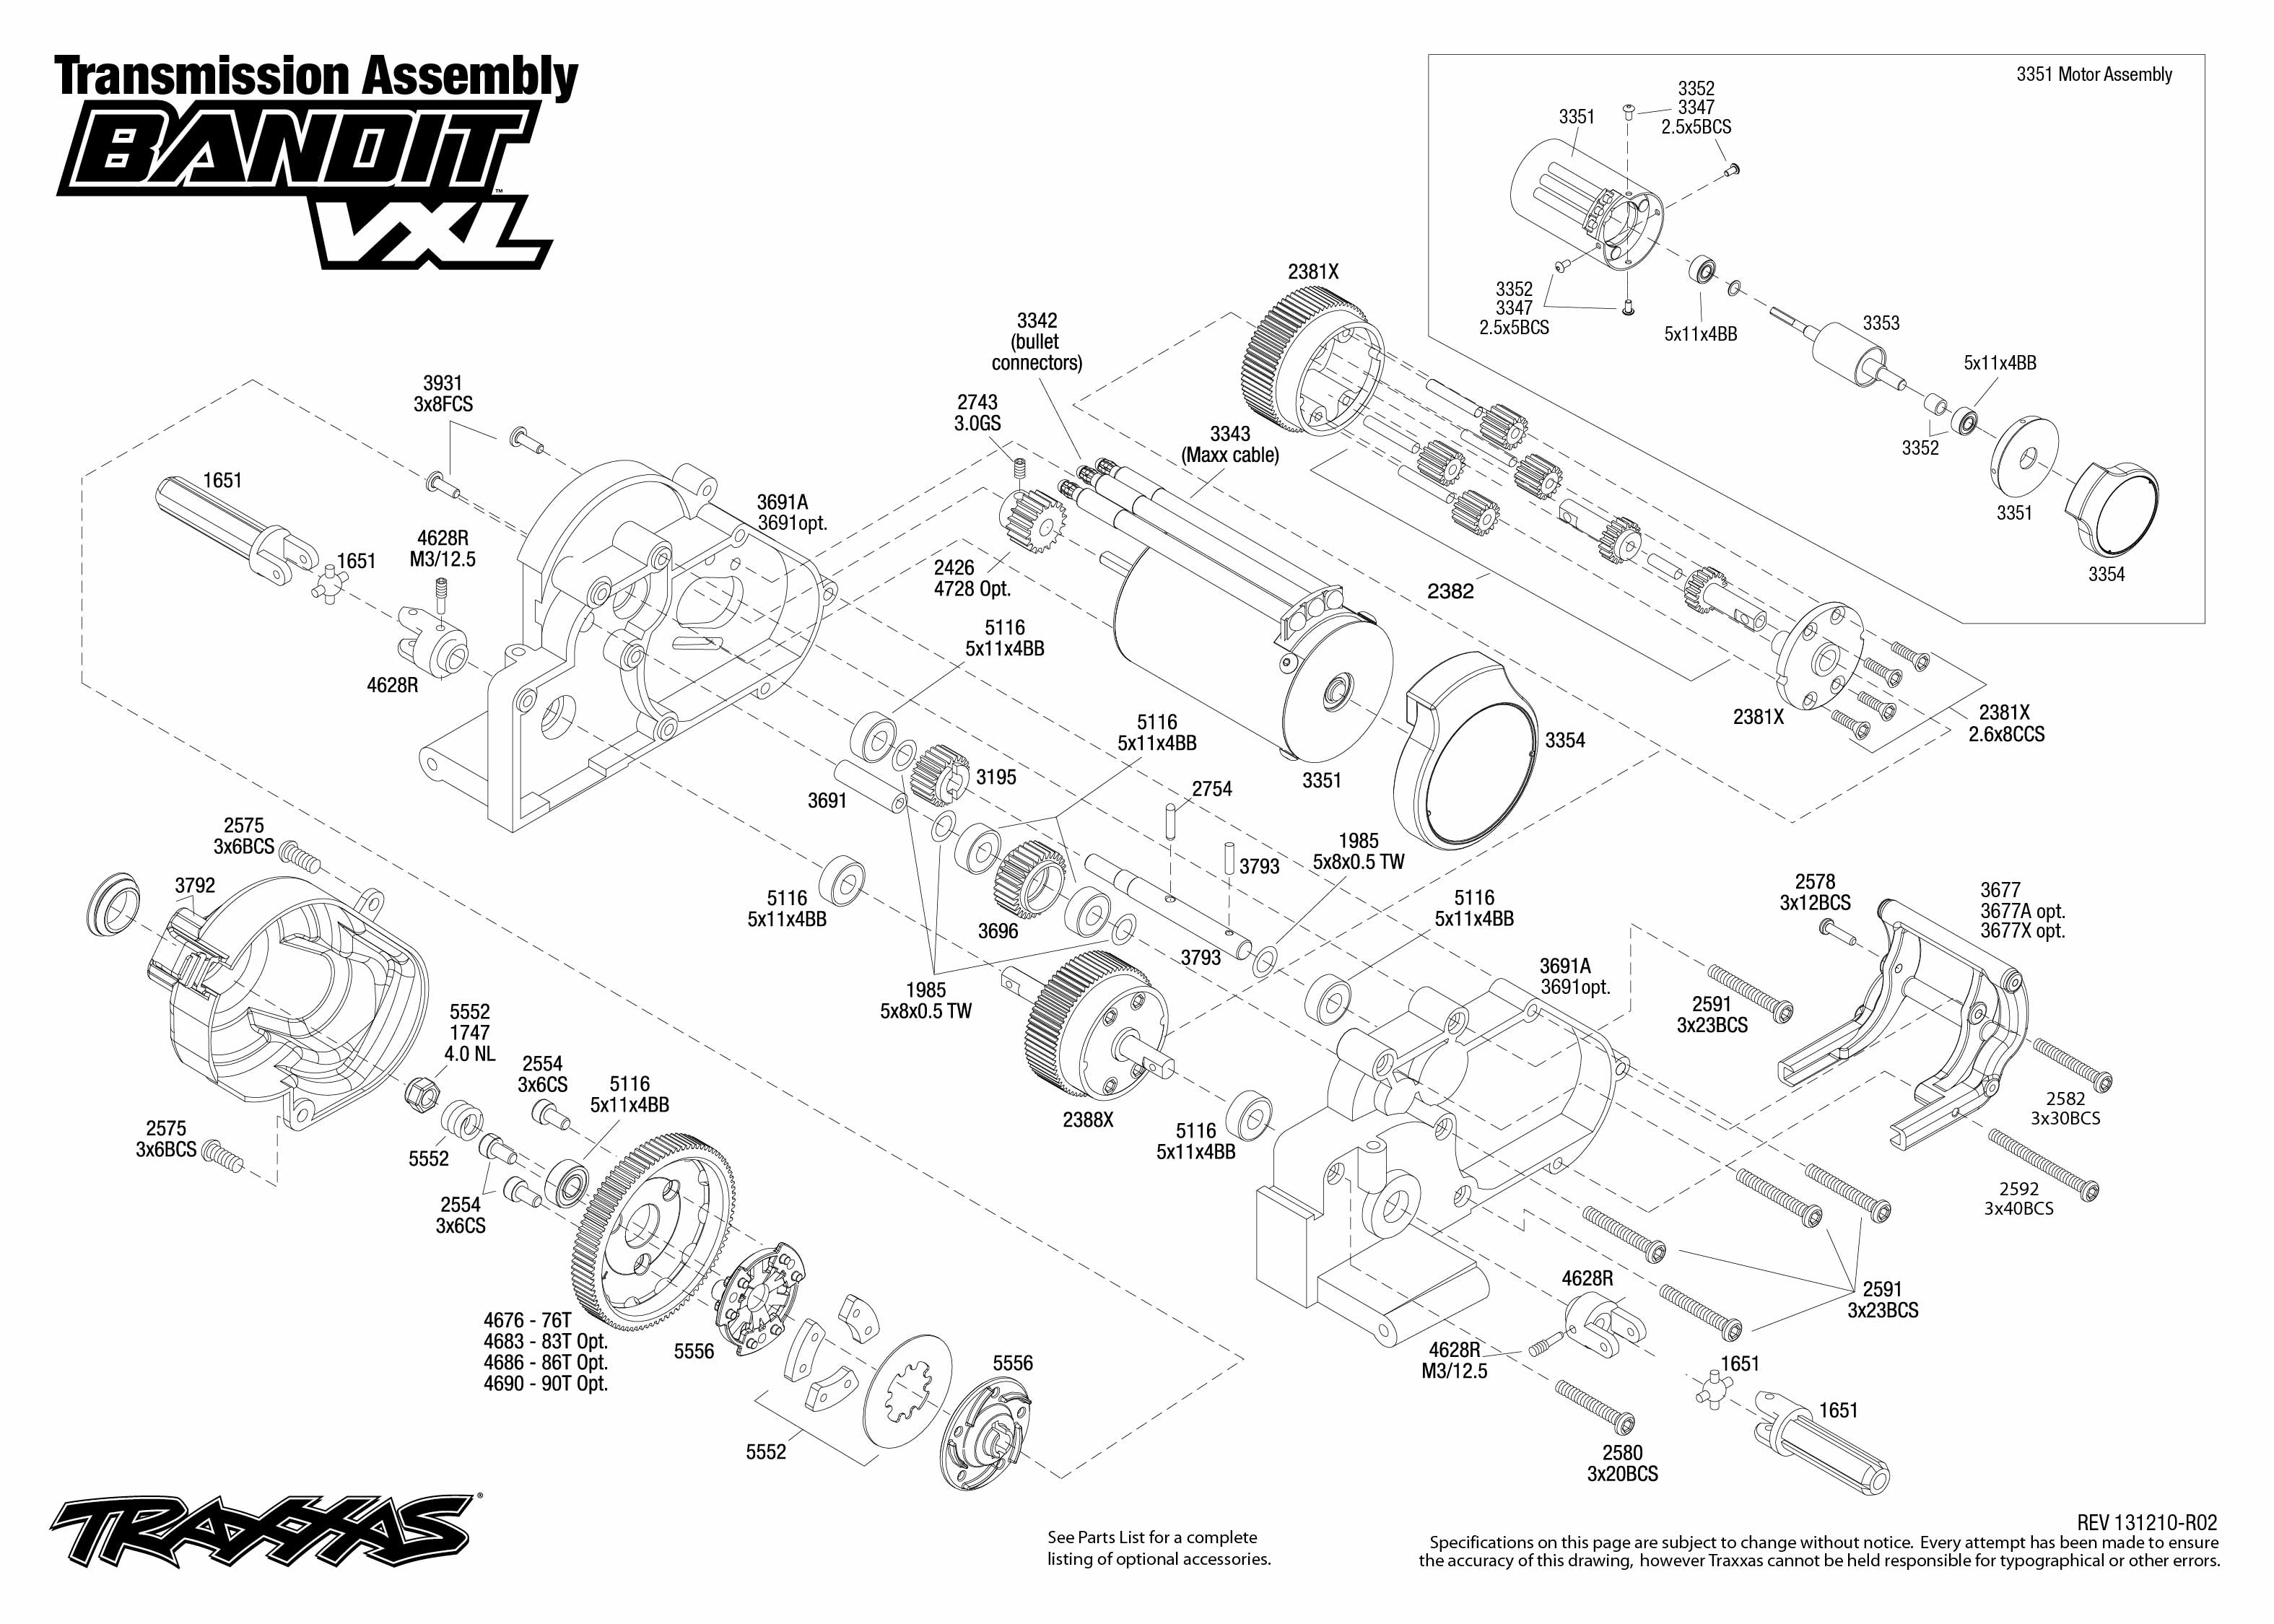 Transmission Exploded View Bandit Vxl